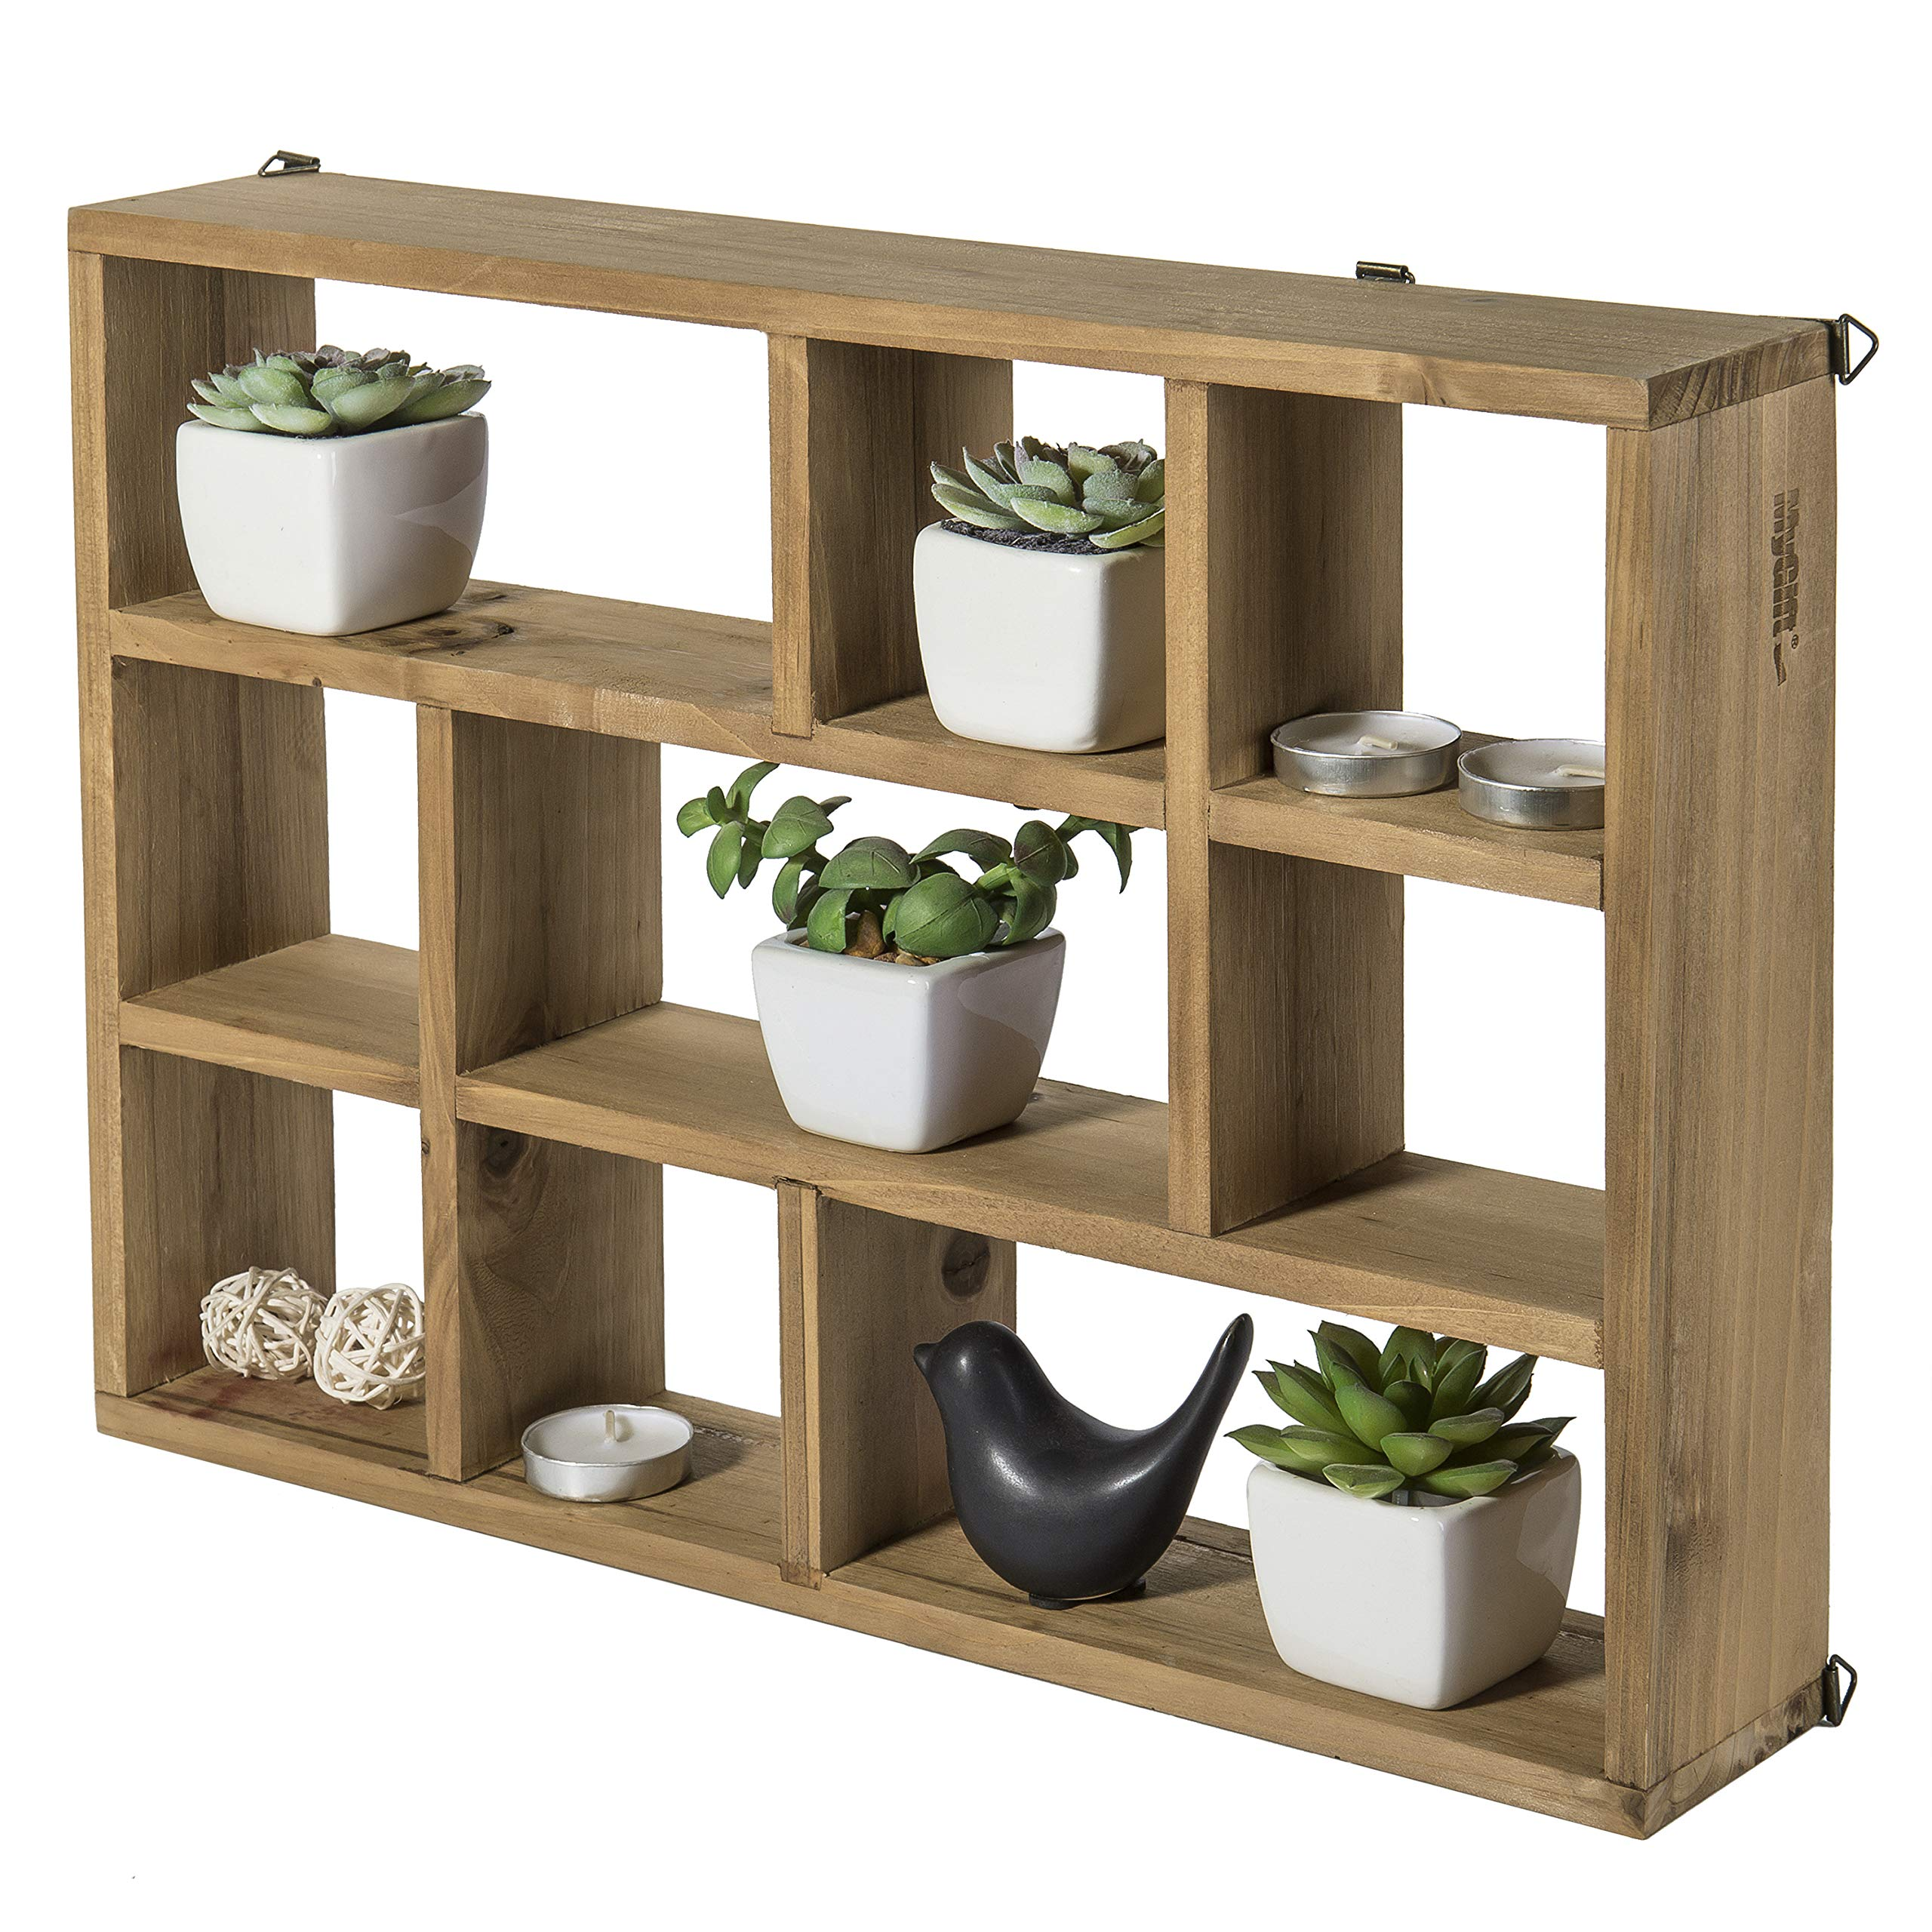 Mygift 15-inch Wall-mounted (vertical Or Horizontal) 9-slot Rustic Wood  Floating Shelves/freestanding Shadow Box, Brown | Lavorist